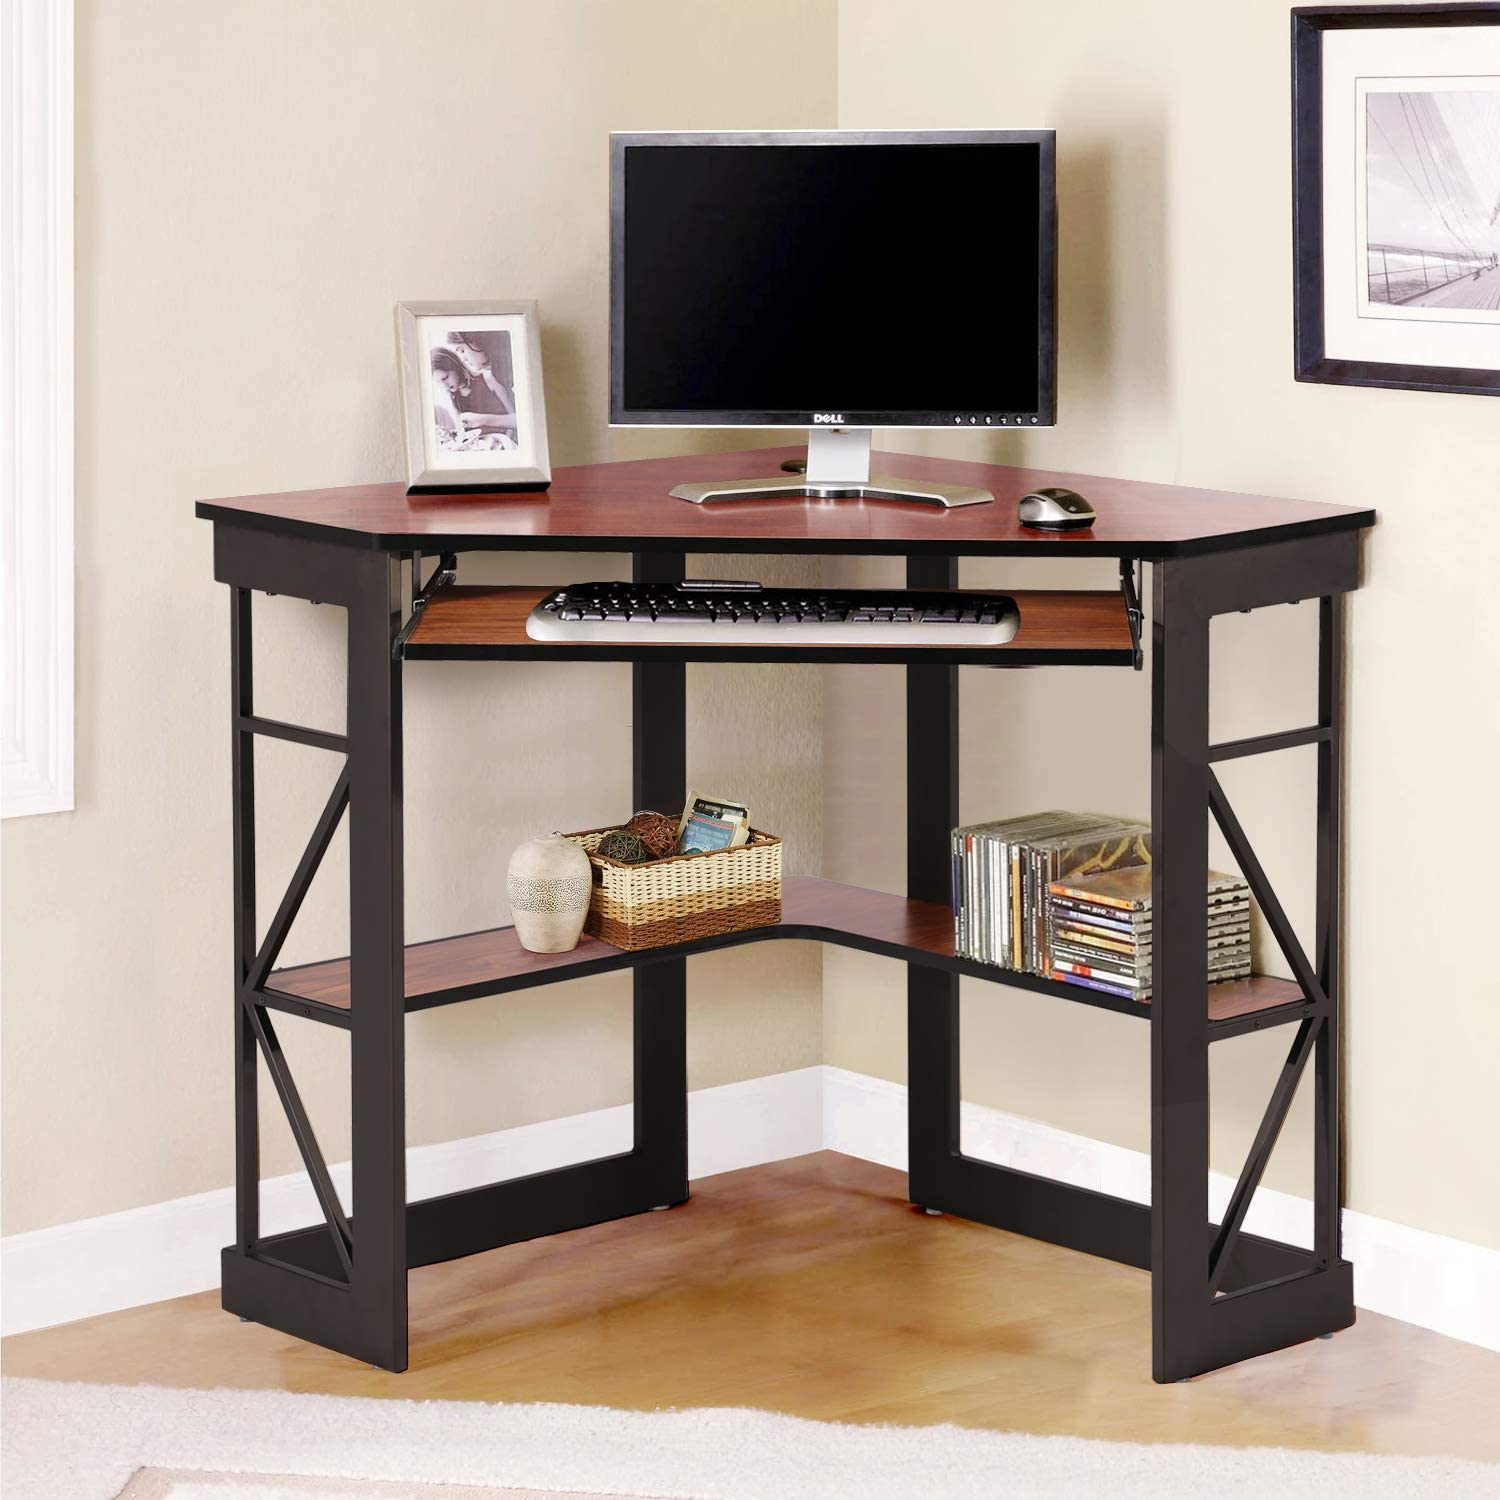 VECELO Corner Computer Desk Writing Smooth Keyboard Tray & Storage Shelves, Compact Home Office Table,Teak